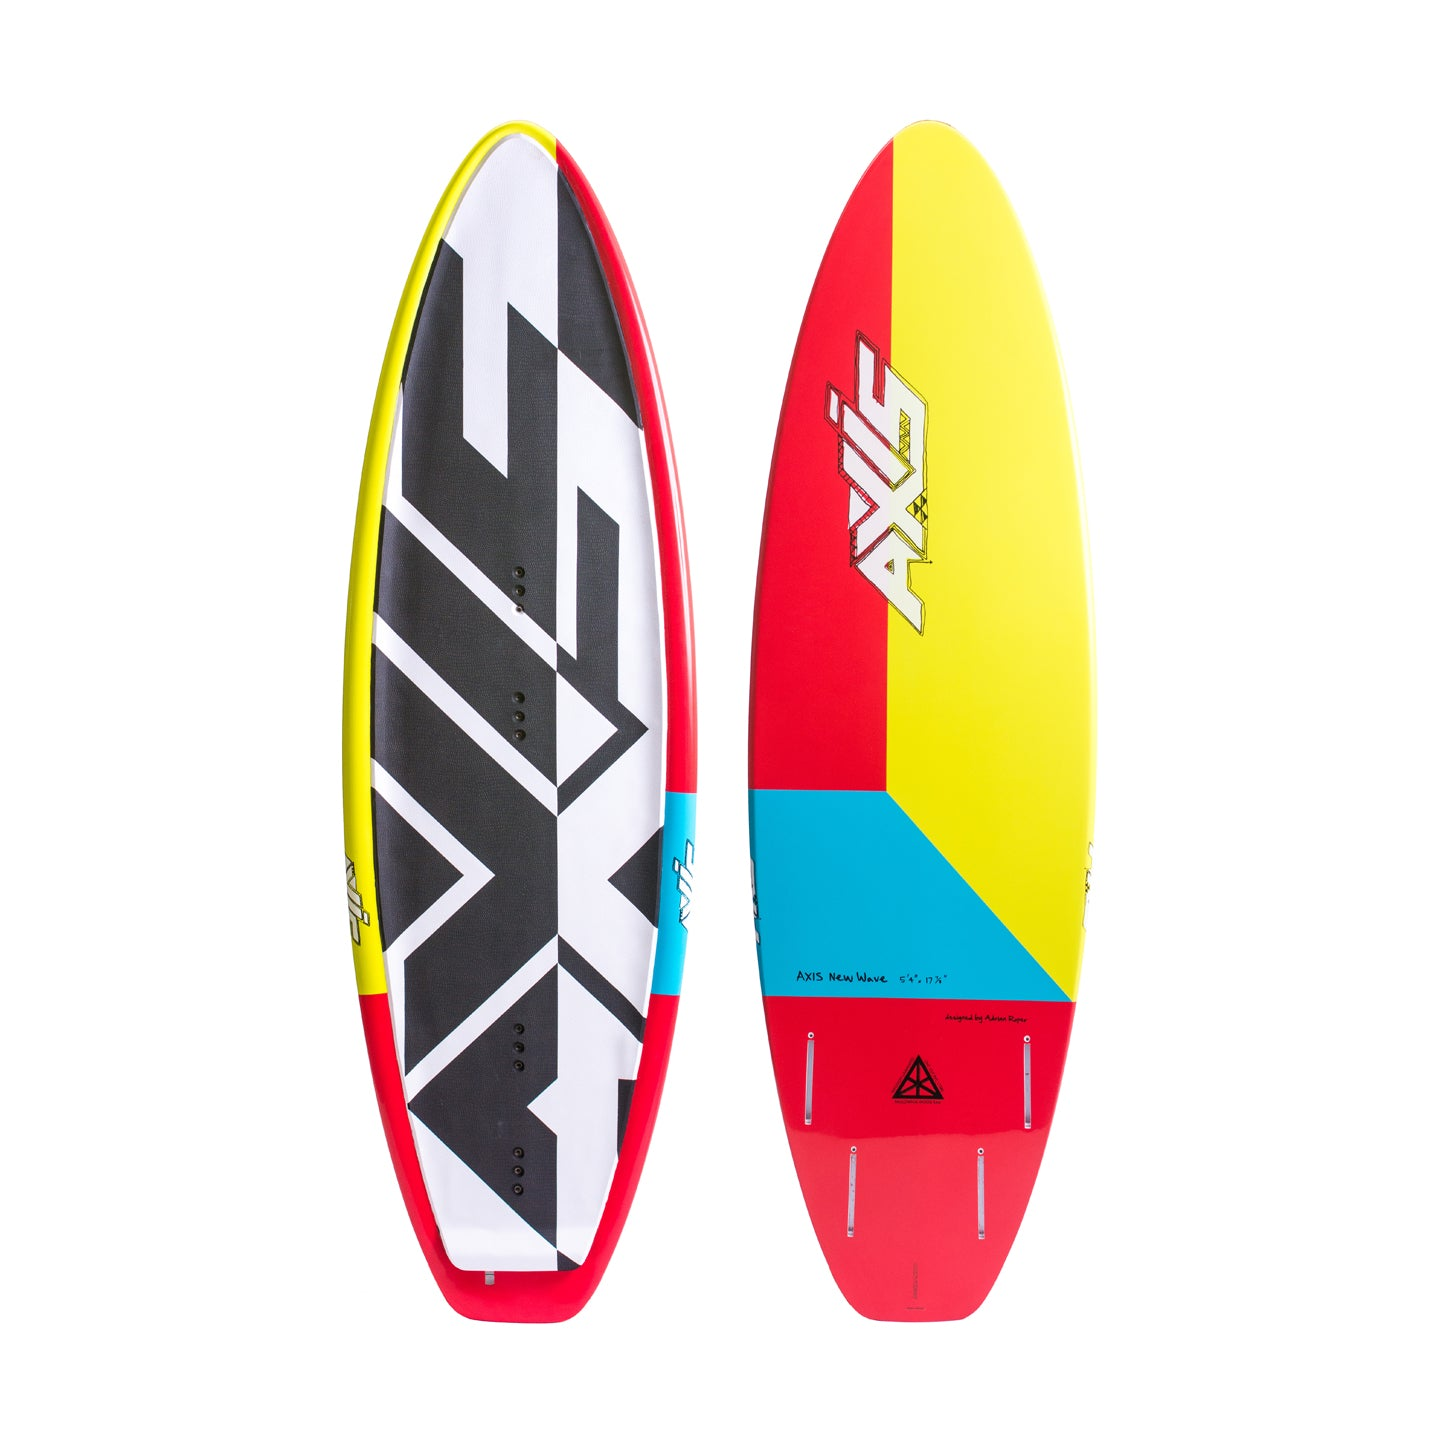 "AXIS NEW WAVE 5'4"" Quad"